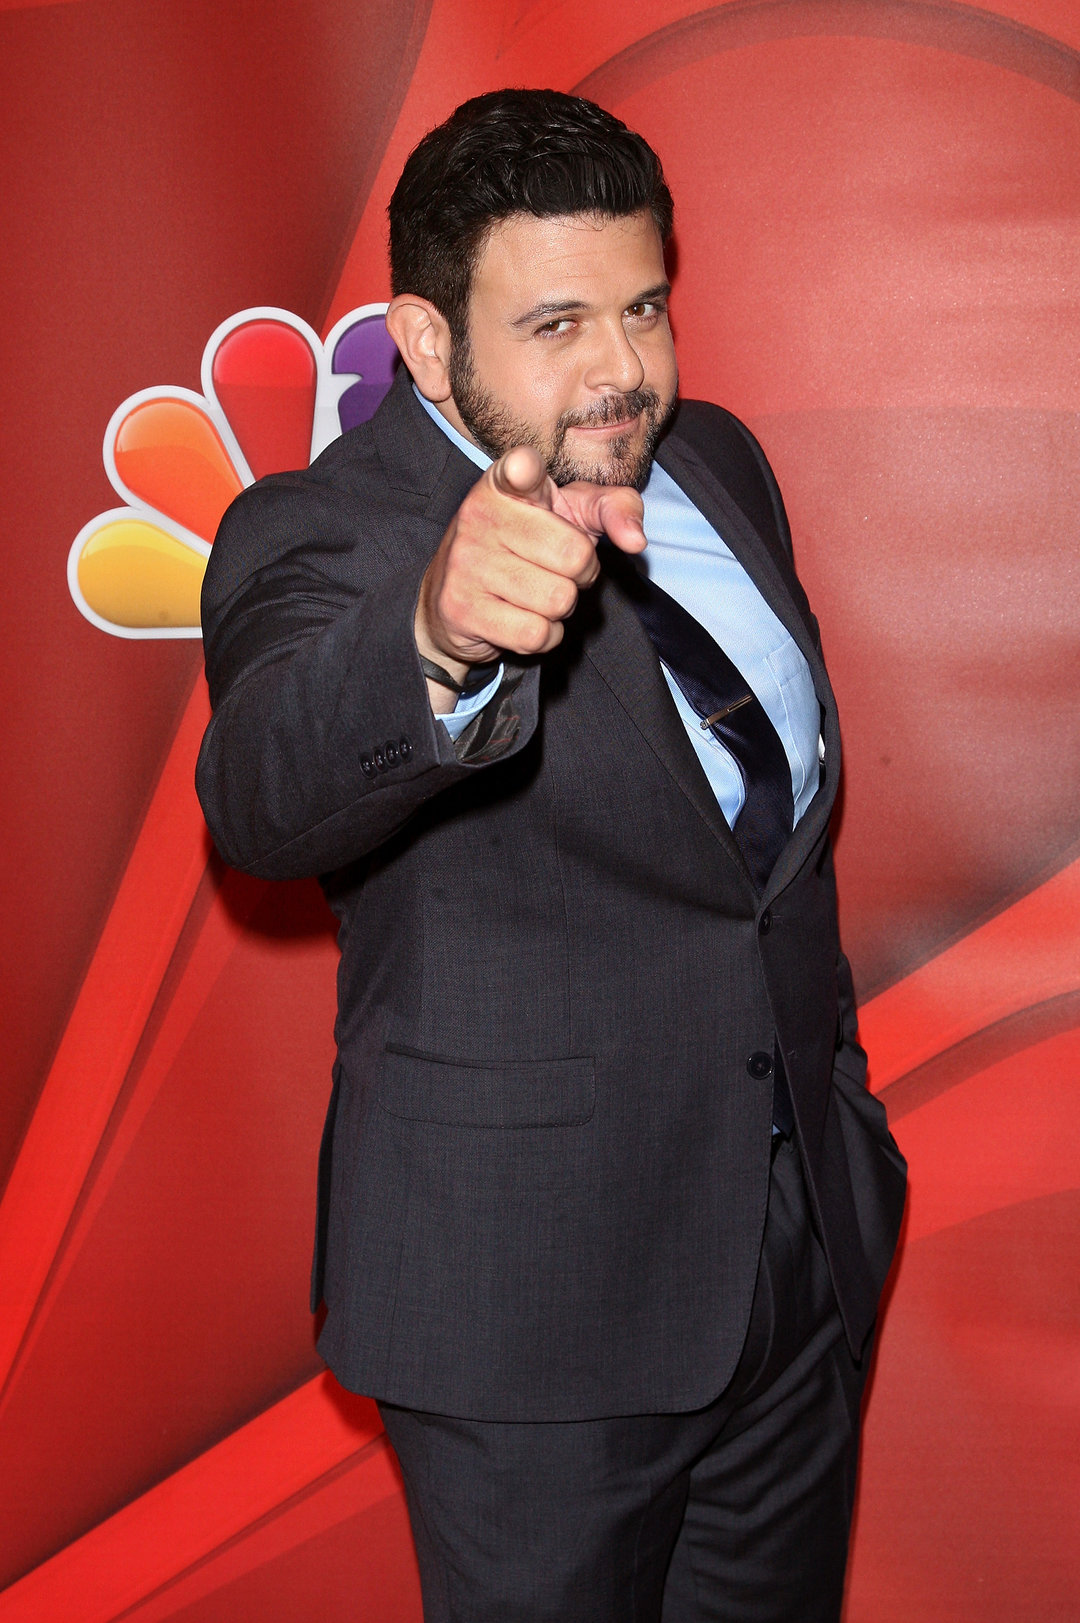 Food Fighters Get To Know Food Fighters Host Adam Richman